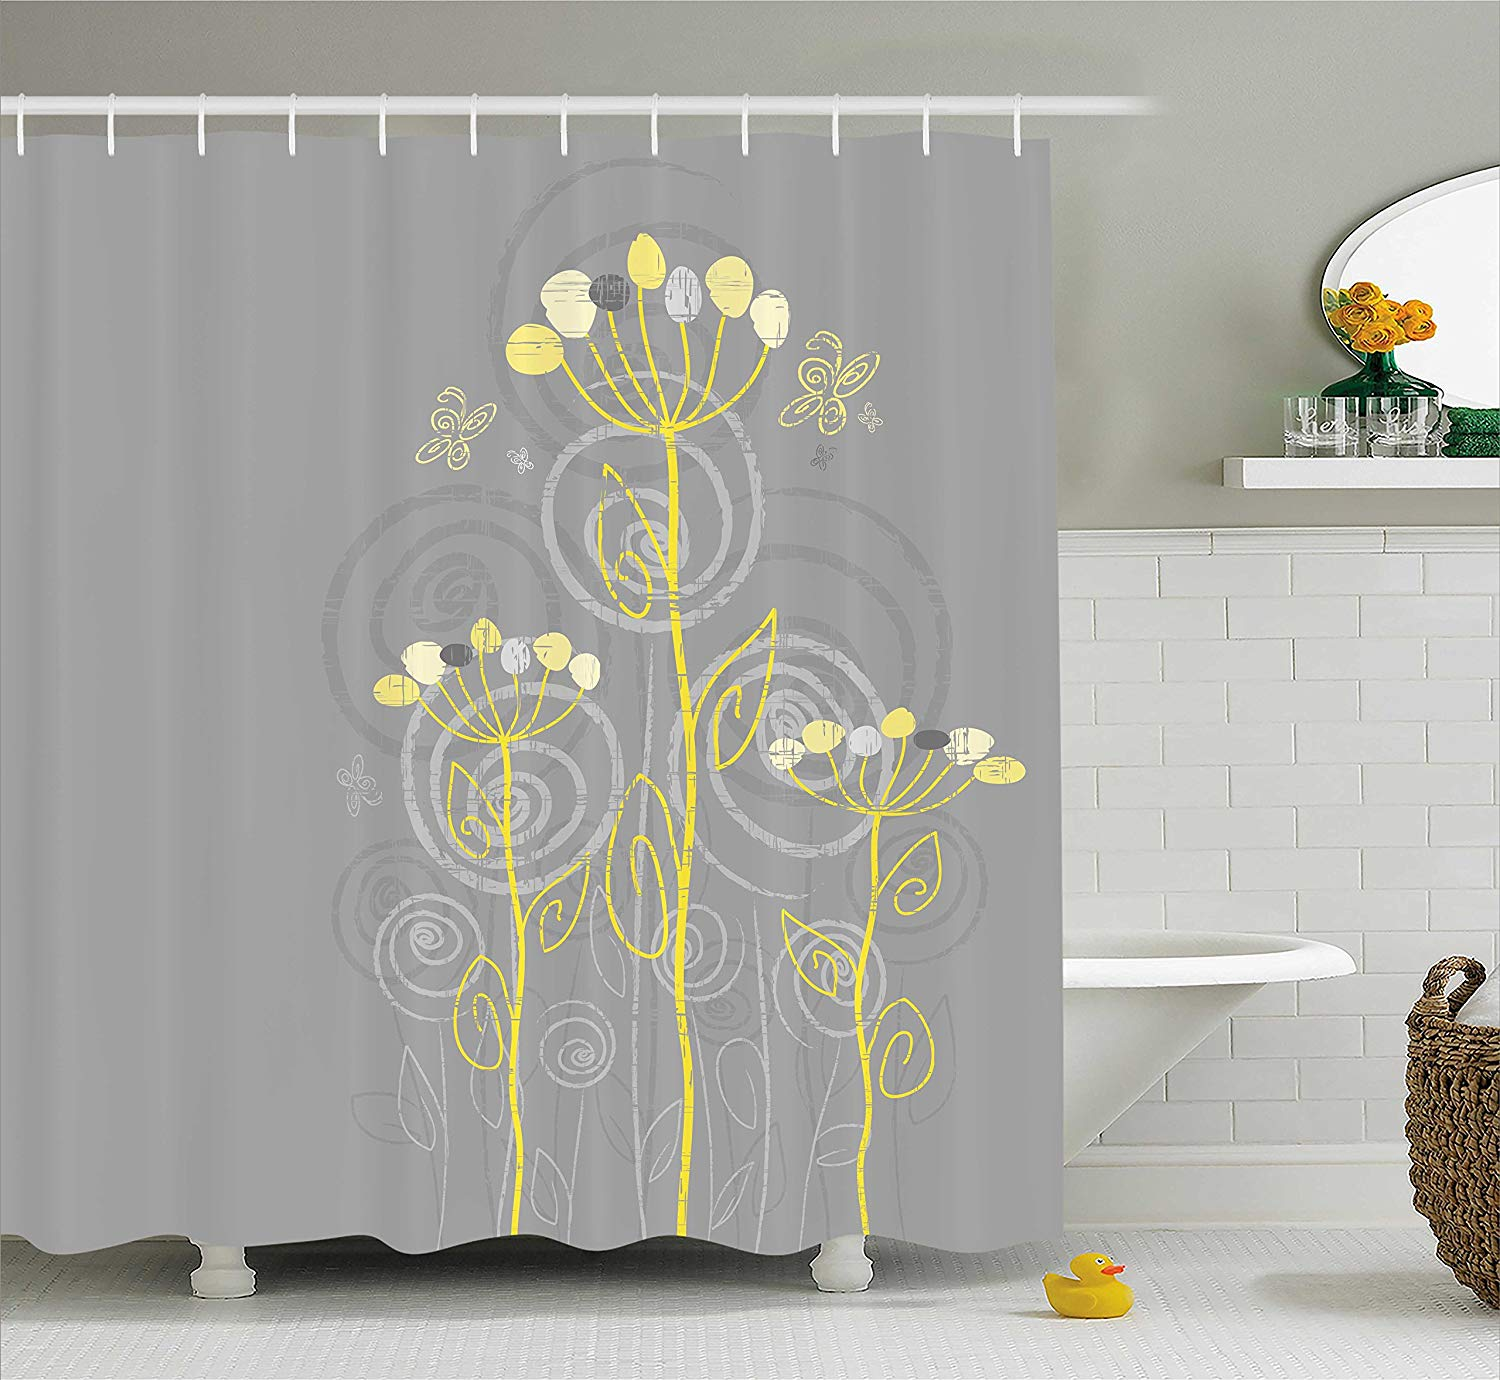 Us 12 8 30 Off Grey And Yellow Shower Curtain Under The Sea Inspired Flowers Abstract Swirls Backdrop Fabric Bathroom Decor Set With Hooks In Shower